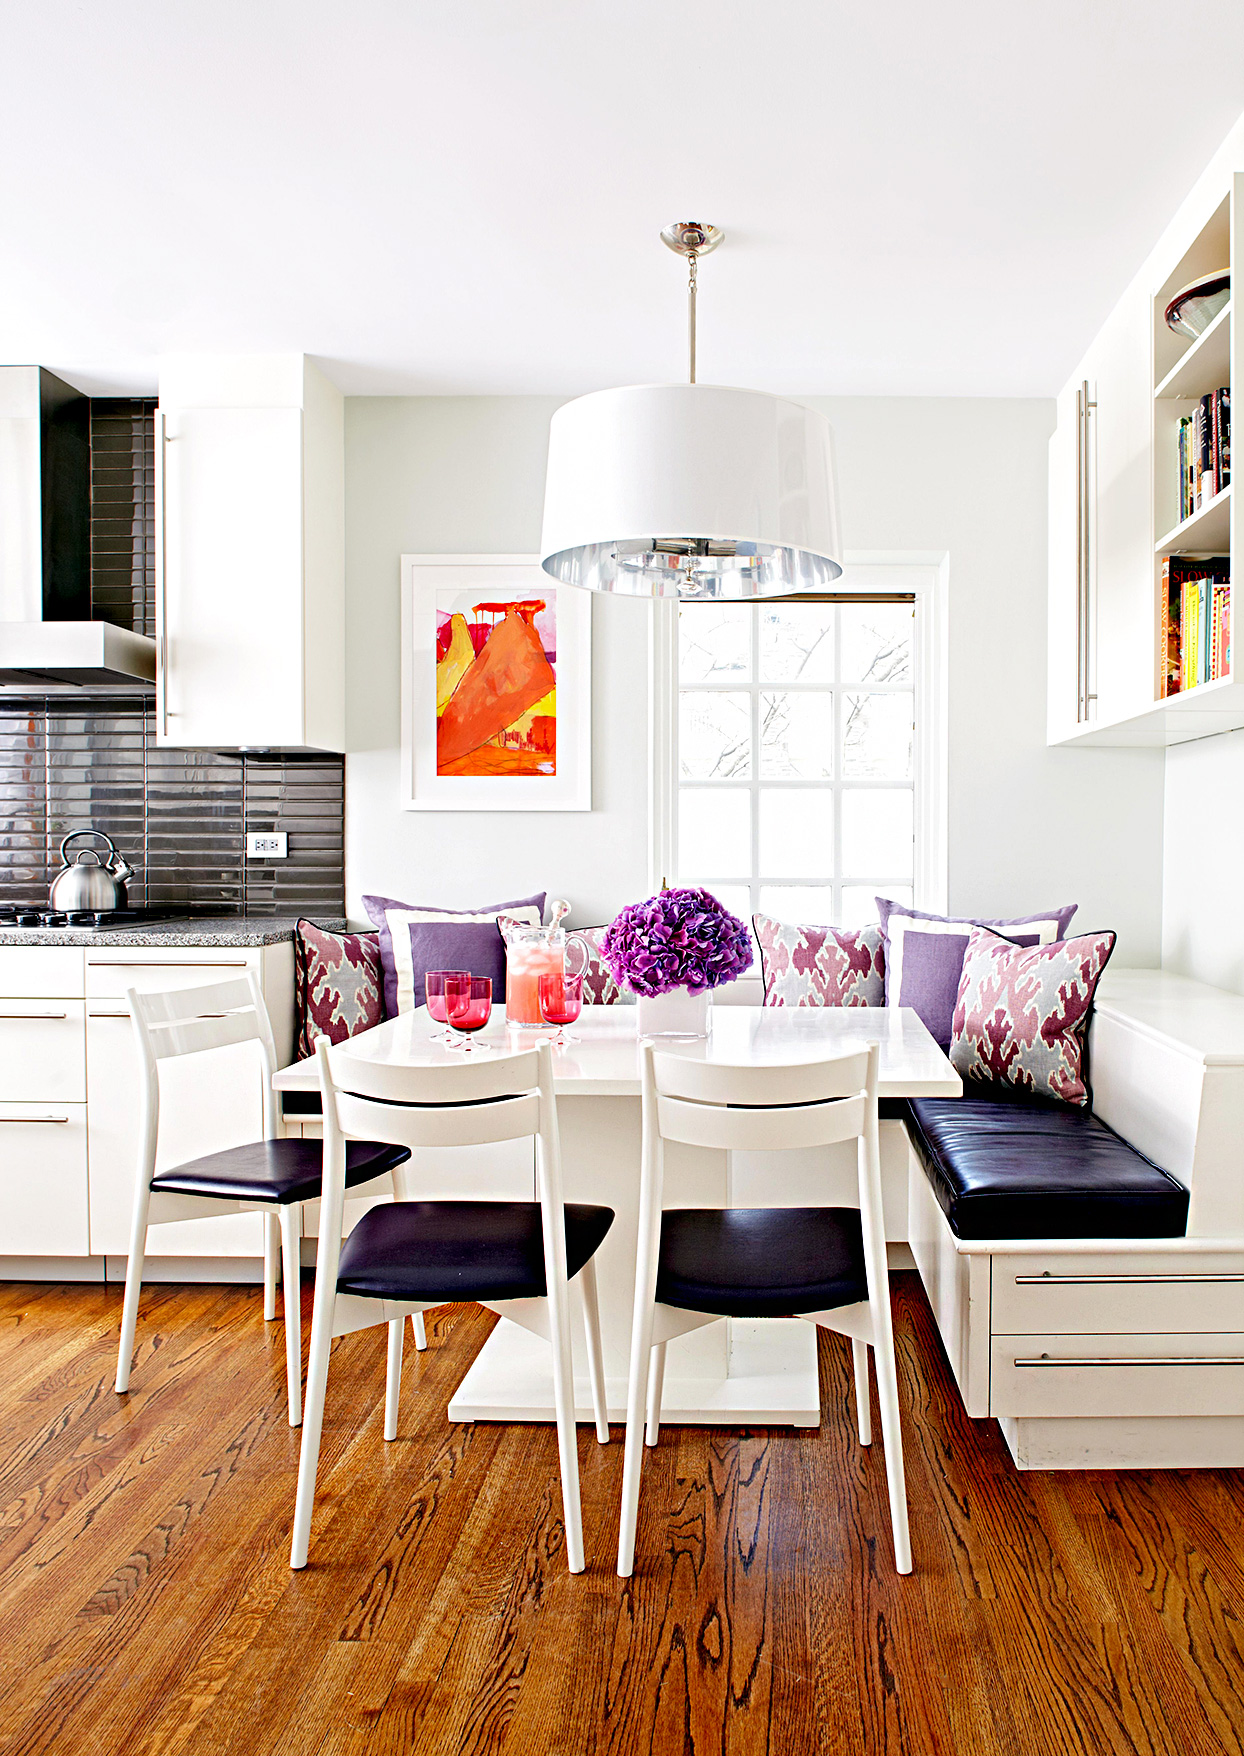 Corner dining area with booth seating and blue and white chairs